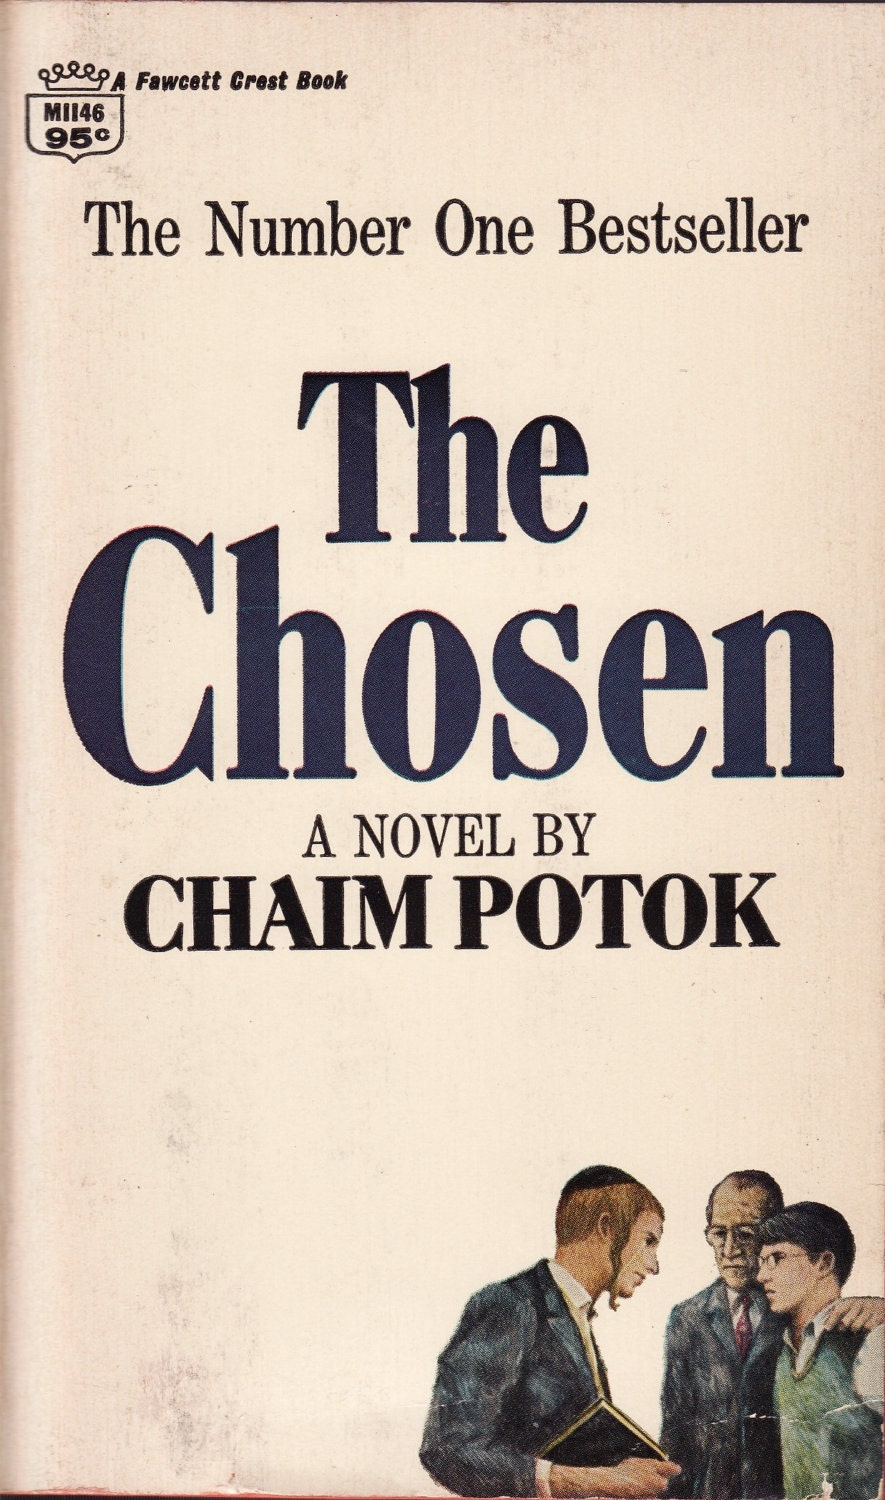 a review of chaim potoks book the promise Book reviews choice chaim potok's 1967 novel the chosen, about jewish teenagers in brooklyn, is no less inscrutable for adults than it has been for generations of young readers by sara ivry december 30, 2011 7:00 am (abigail miller/tablet magazine.